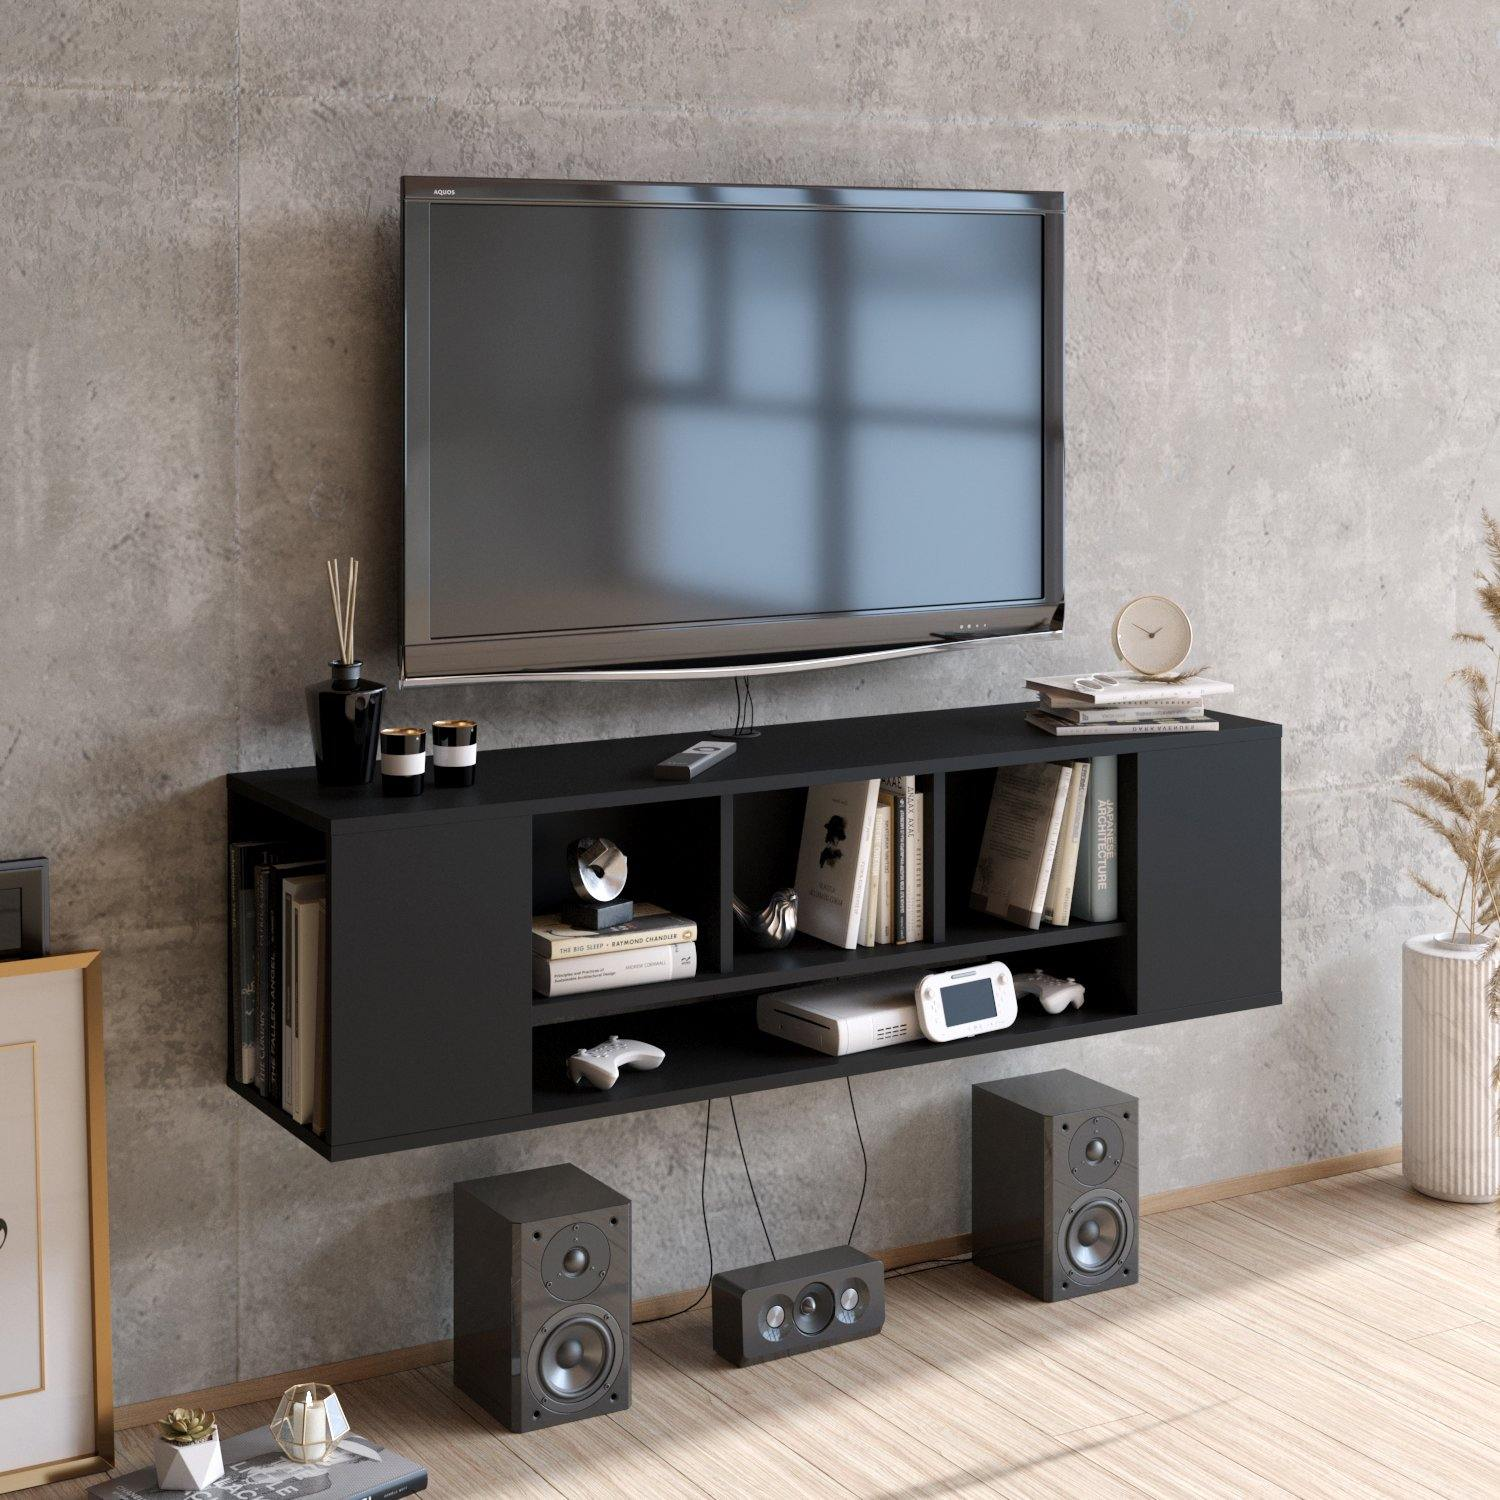 Paldi 53'' Wide Floating TV Stand and Media Console - Decorotika